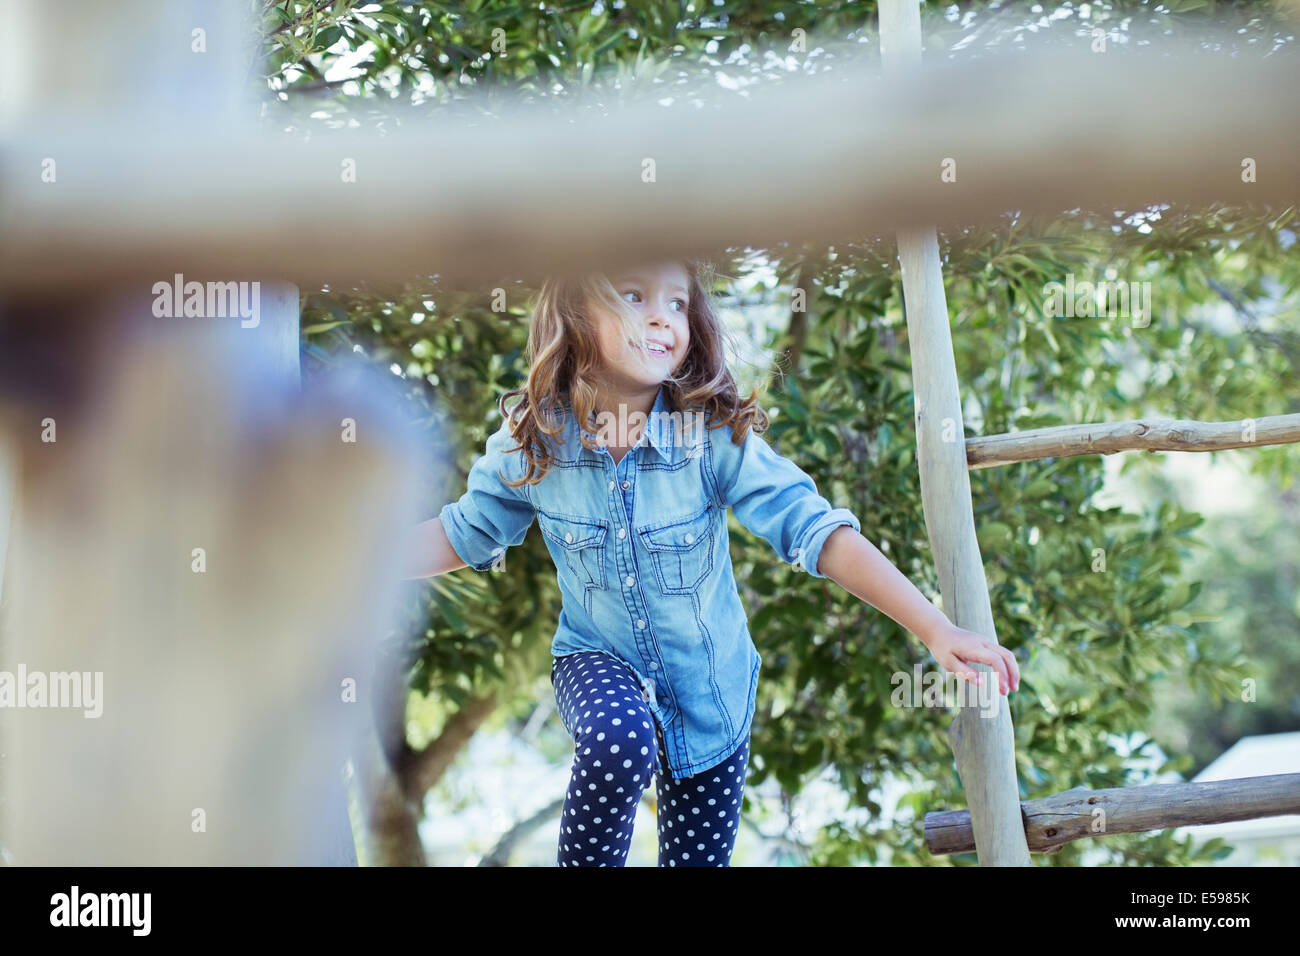 Escalade sur structure de jeux de fille Photo Stock